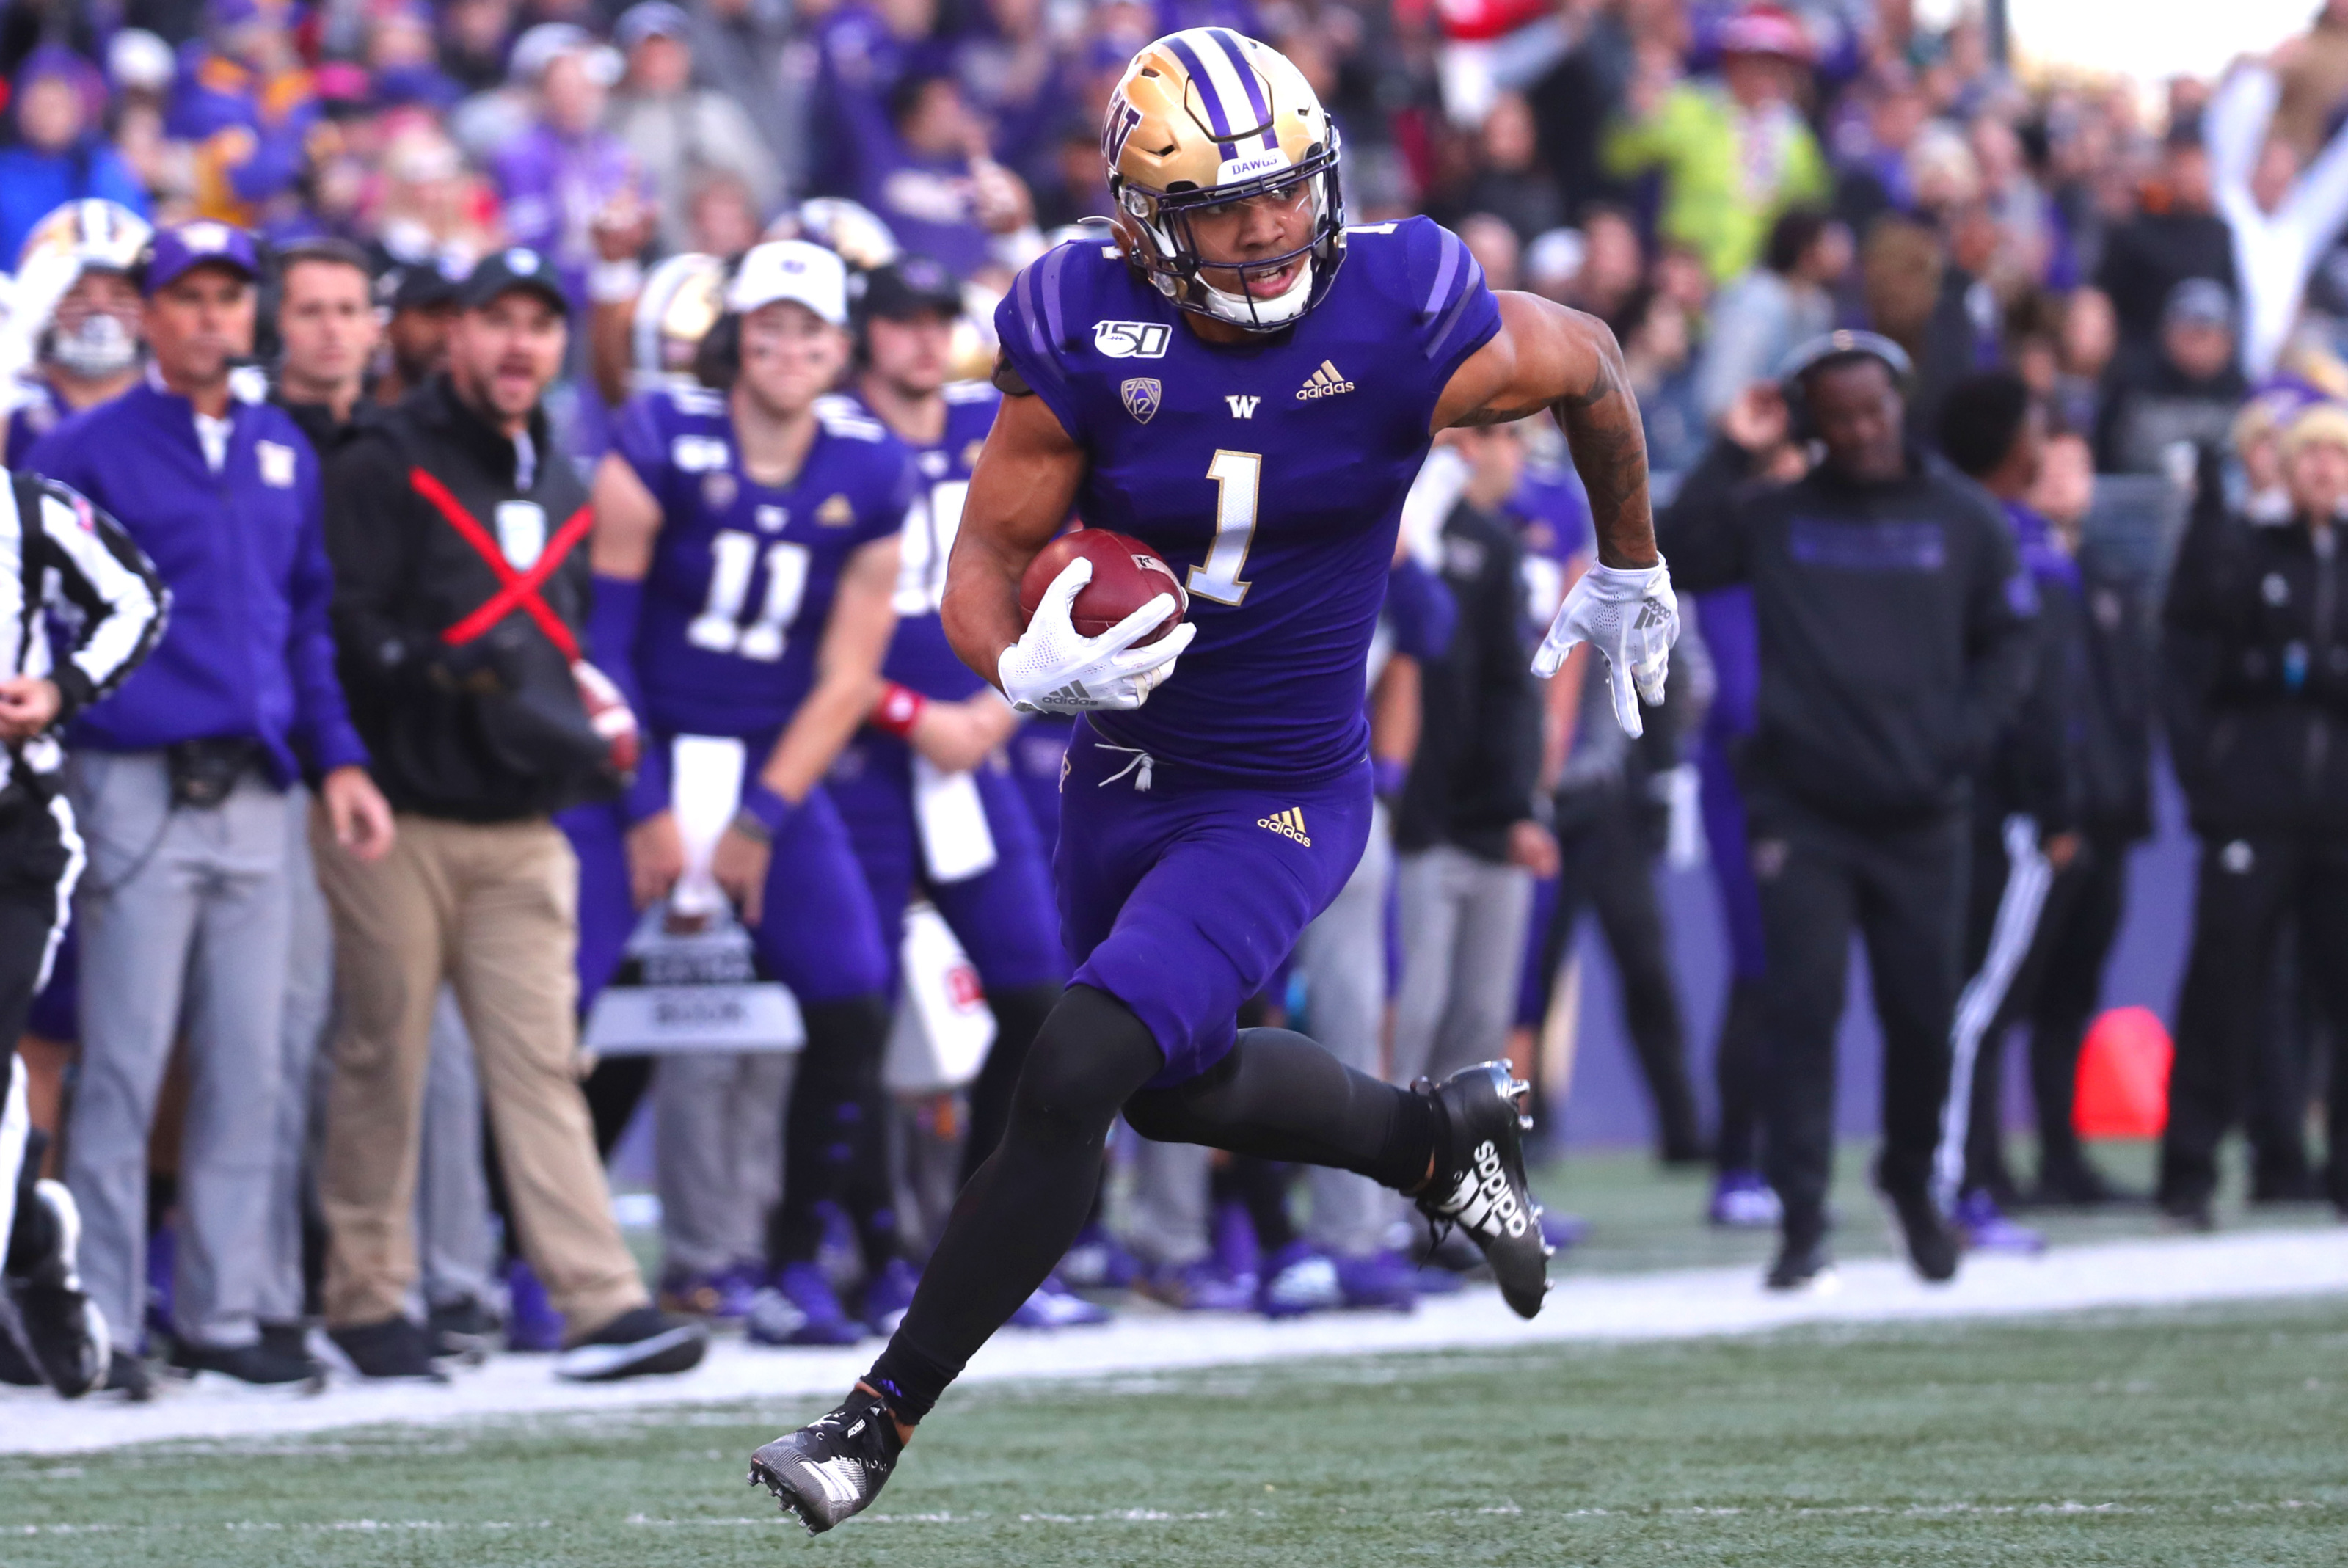 Redskins three-round 2020 NFL mock draft: Offense after Chase Young